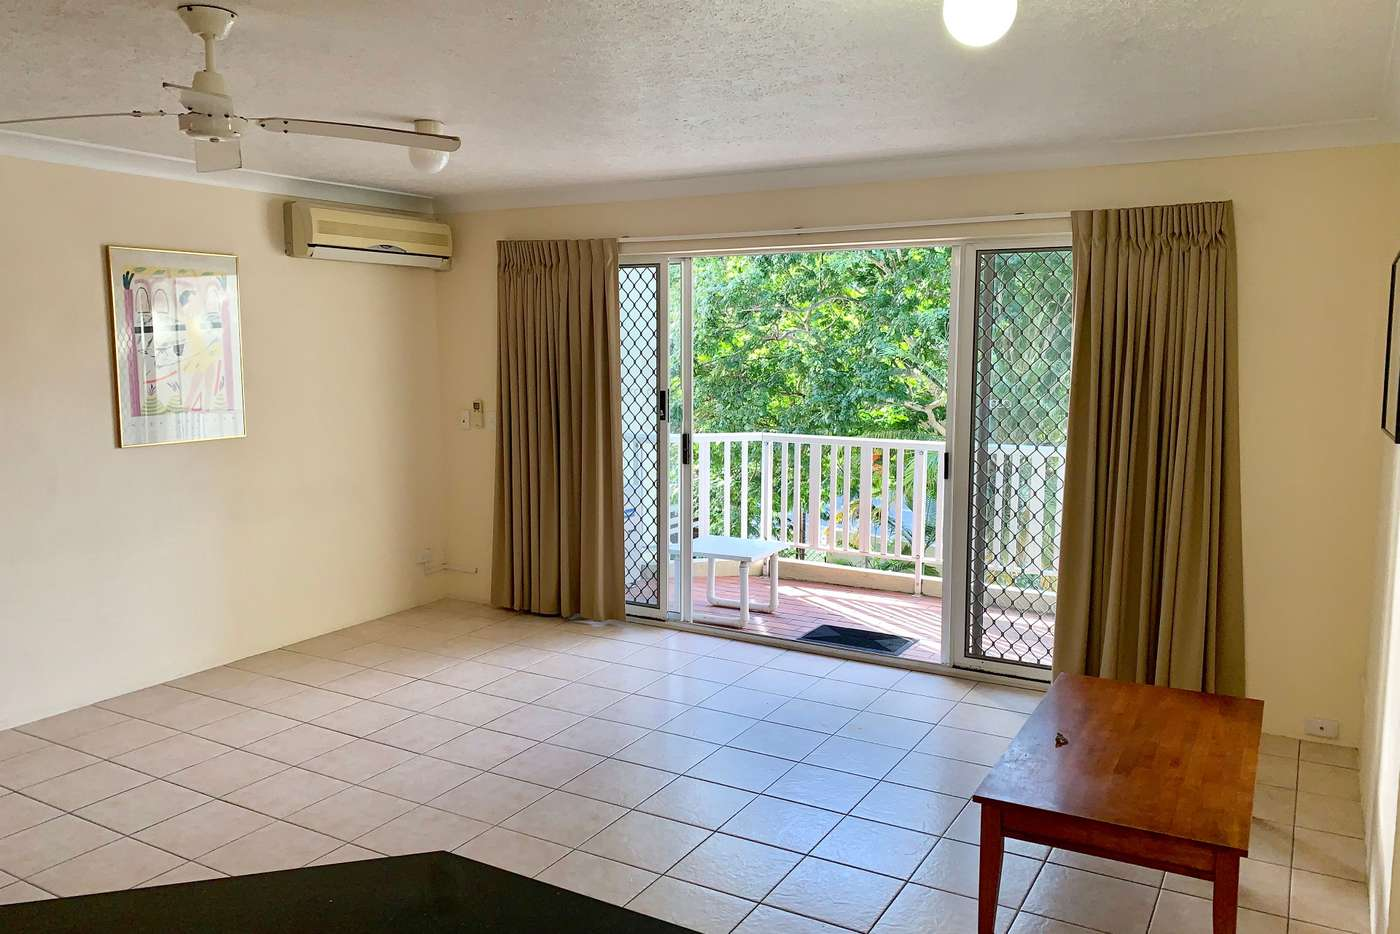 Sixth view of Homely unit listing, 27/42 Beach Parade 'Tradewinds', Surfers Paradise QLD 4217